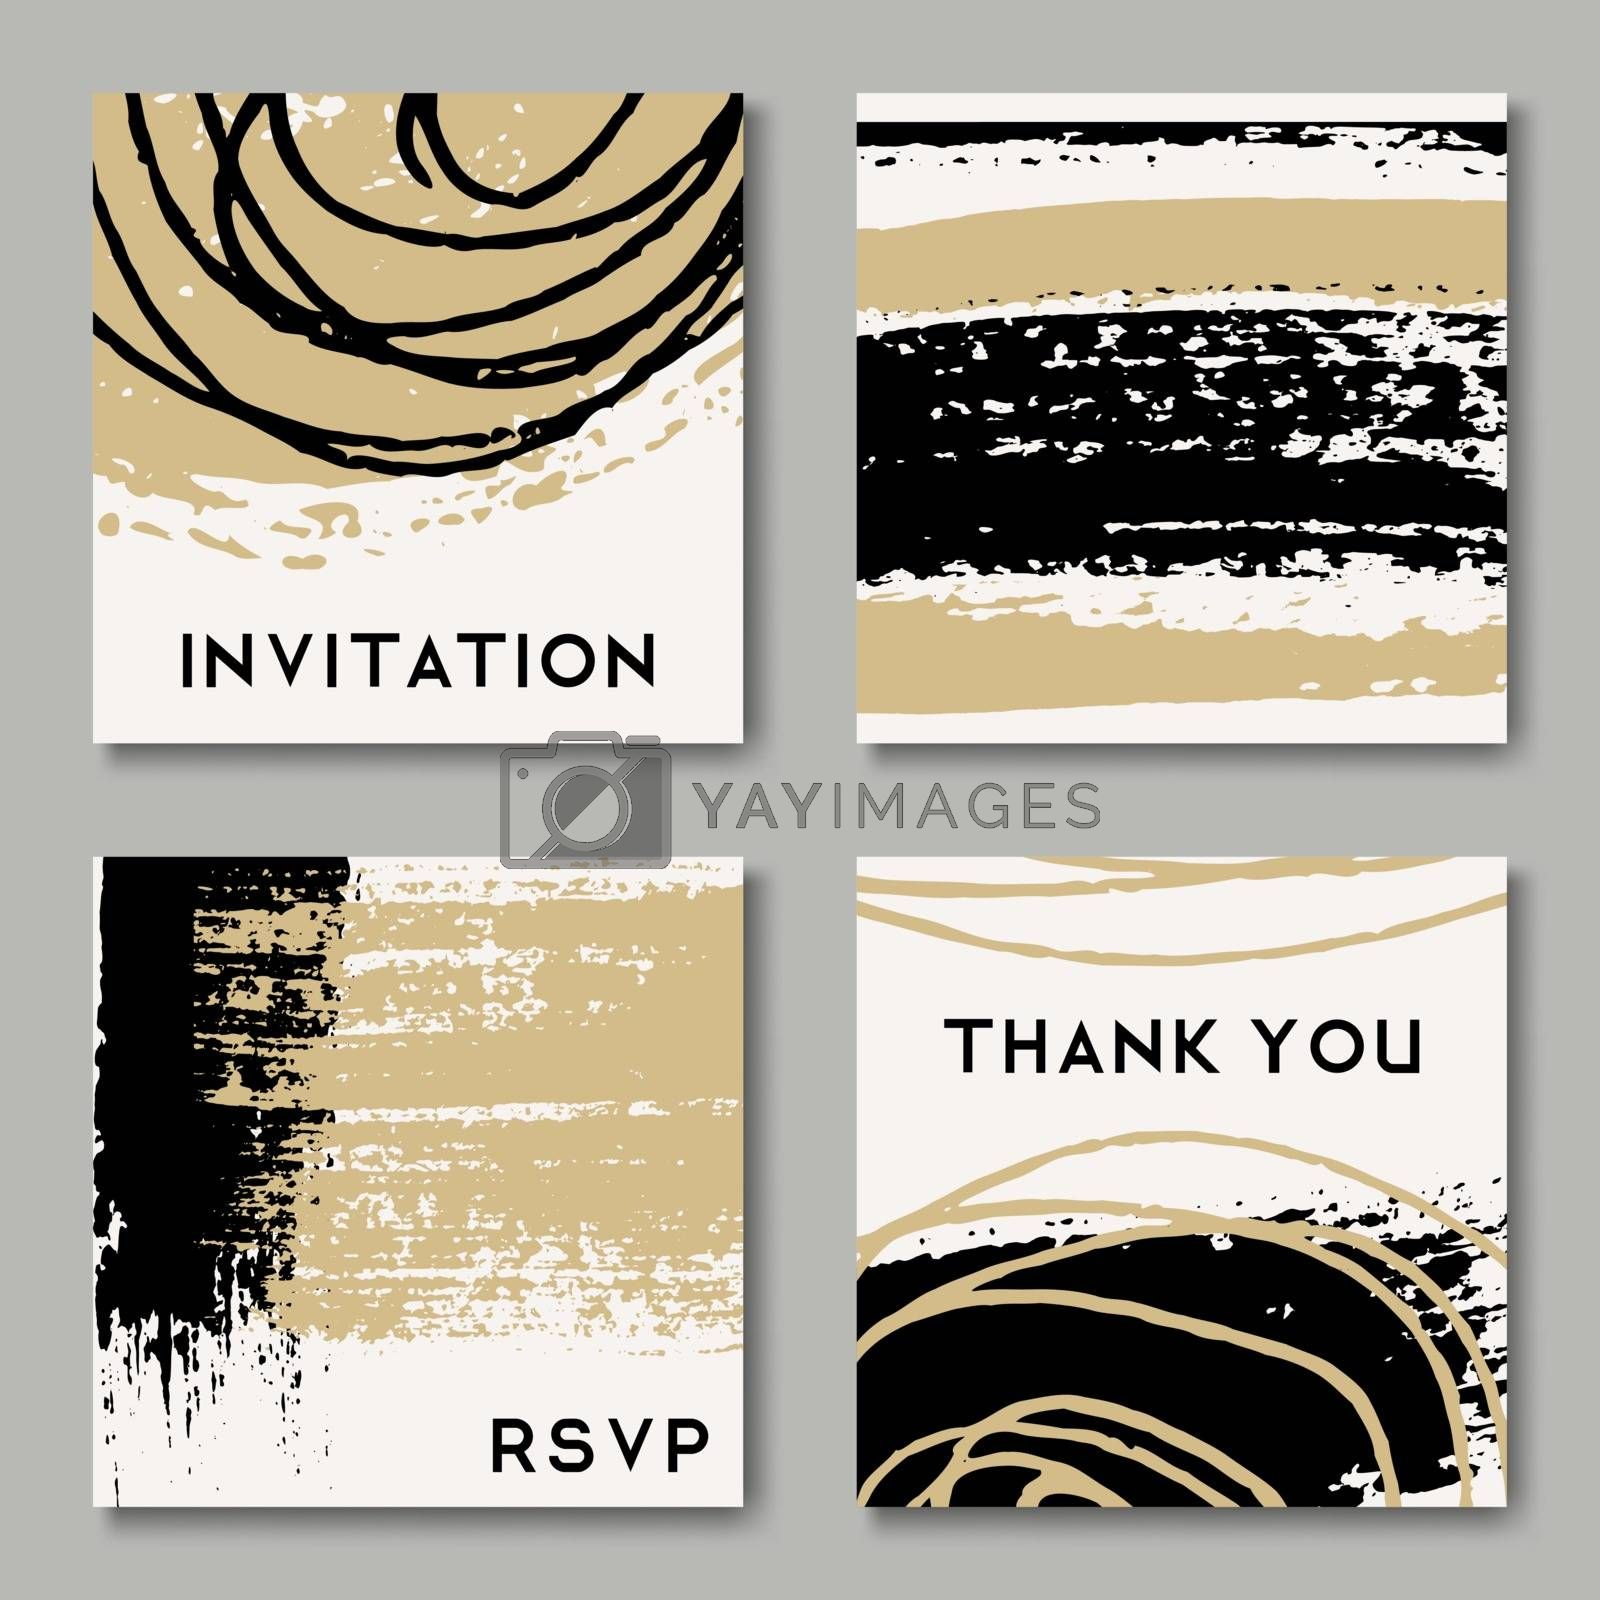 A set of hand drawn style greeting card templates in black, white and golden. Abstract brush strokes and ink doodle pattern designs with copy space. EPS 10 file, gradient mesh used.